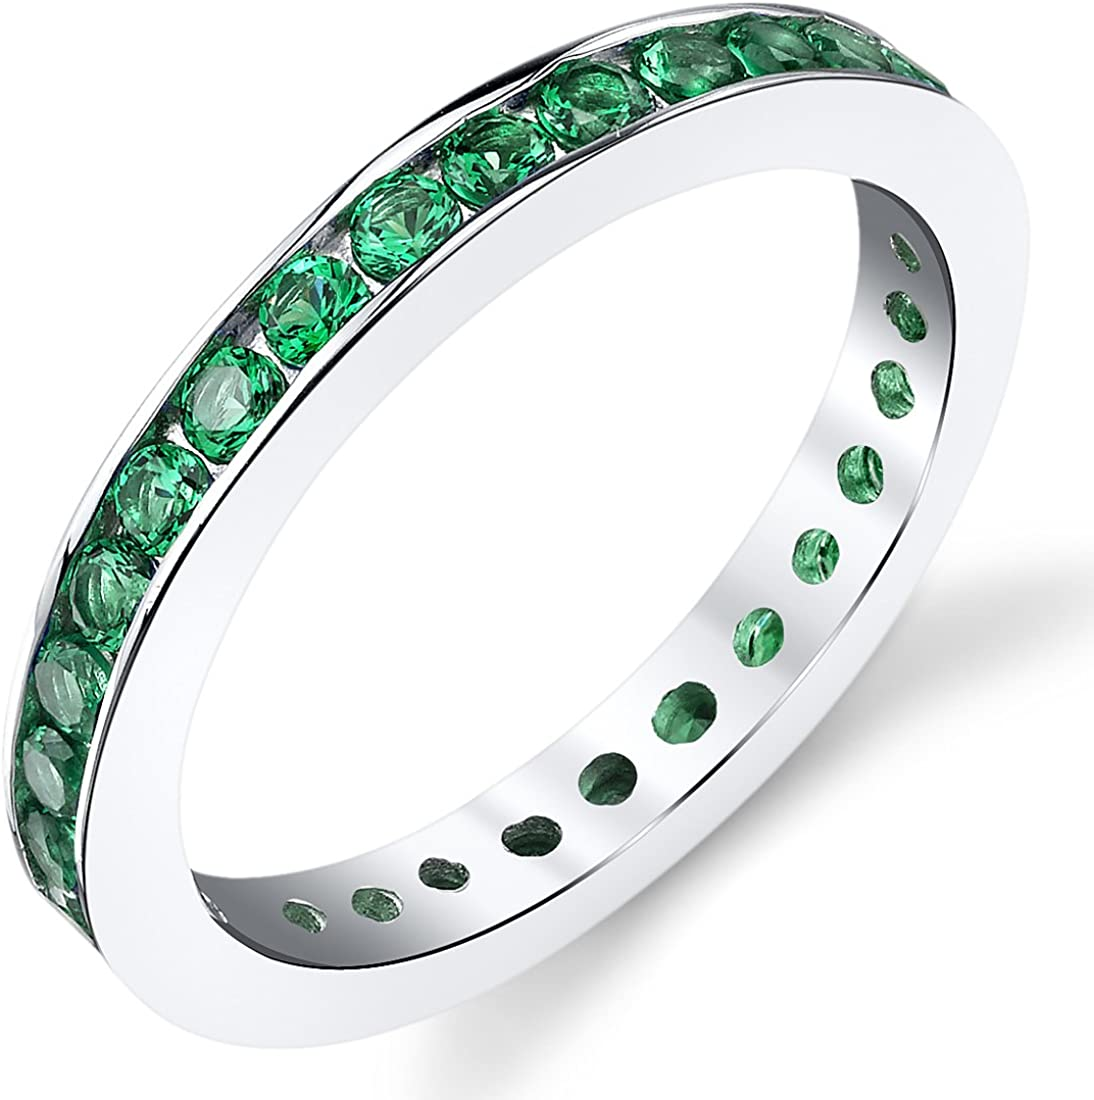 Peora Simulated Emerald Eternity Ring Band for Women in Sterling Silver, 1.50 Carats total, Sizes 5-9